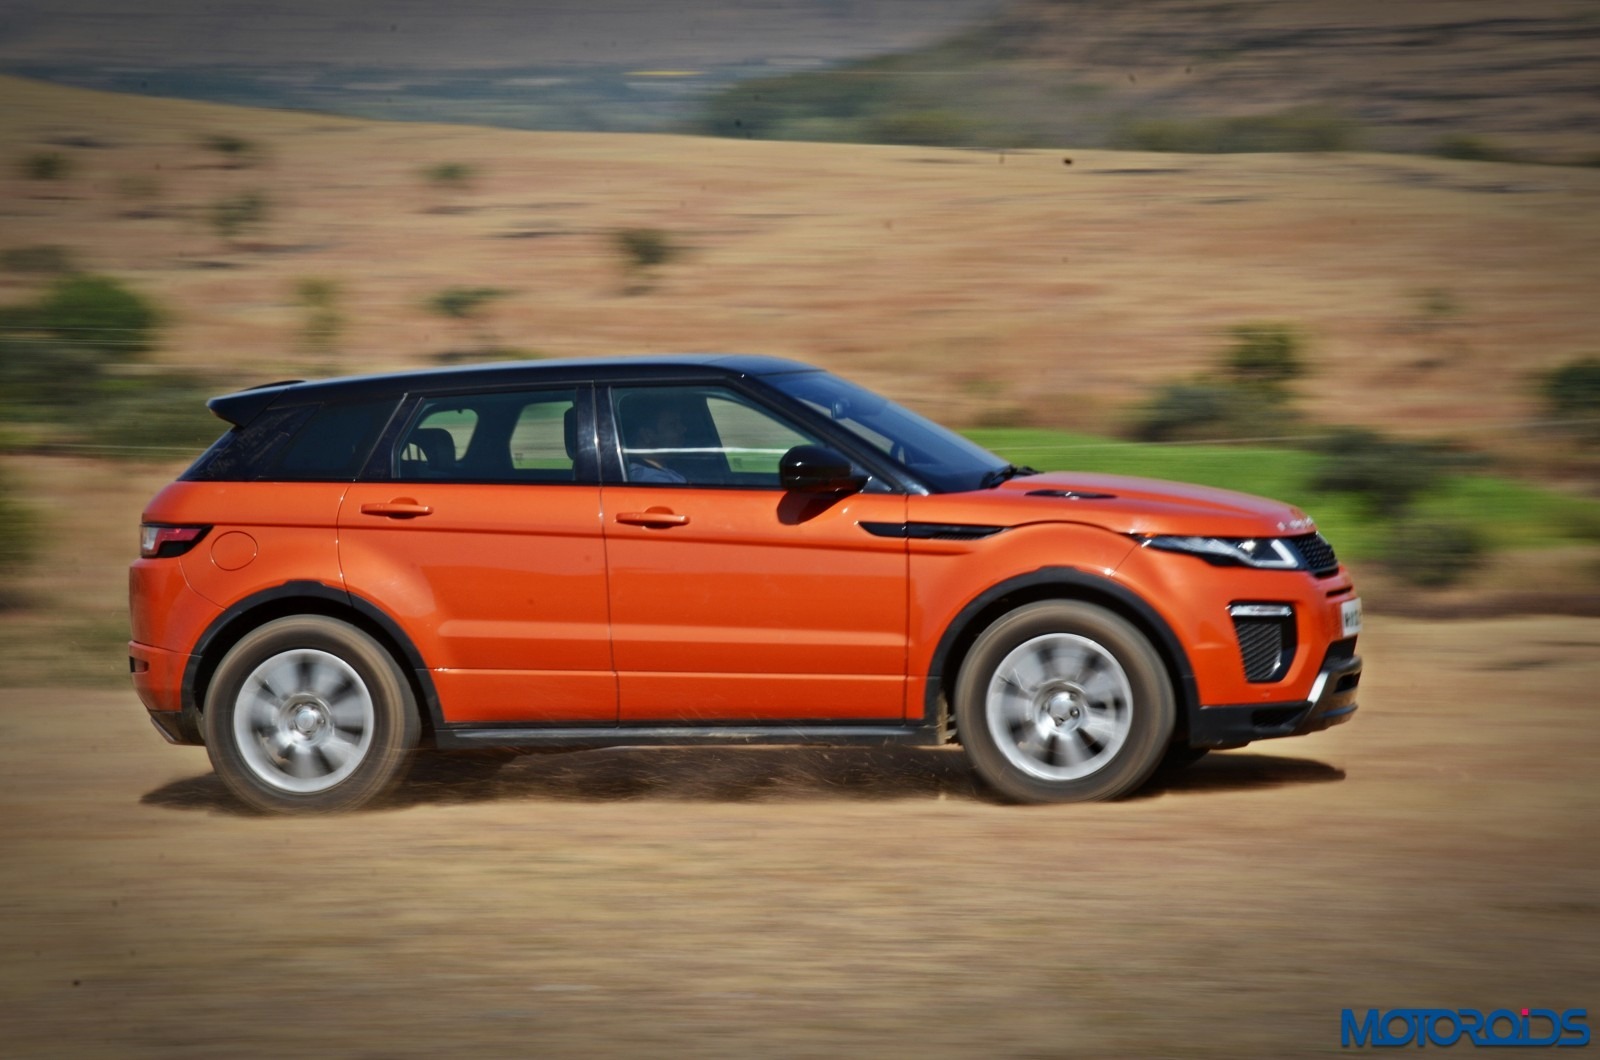 Range-Rover-Evoque-orange-8